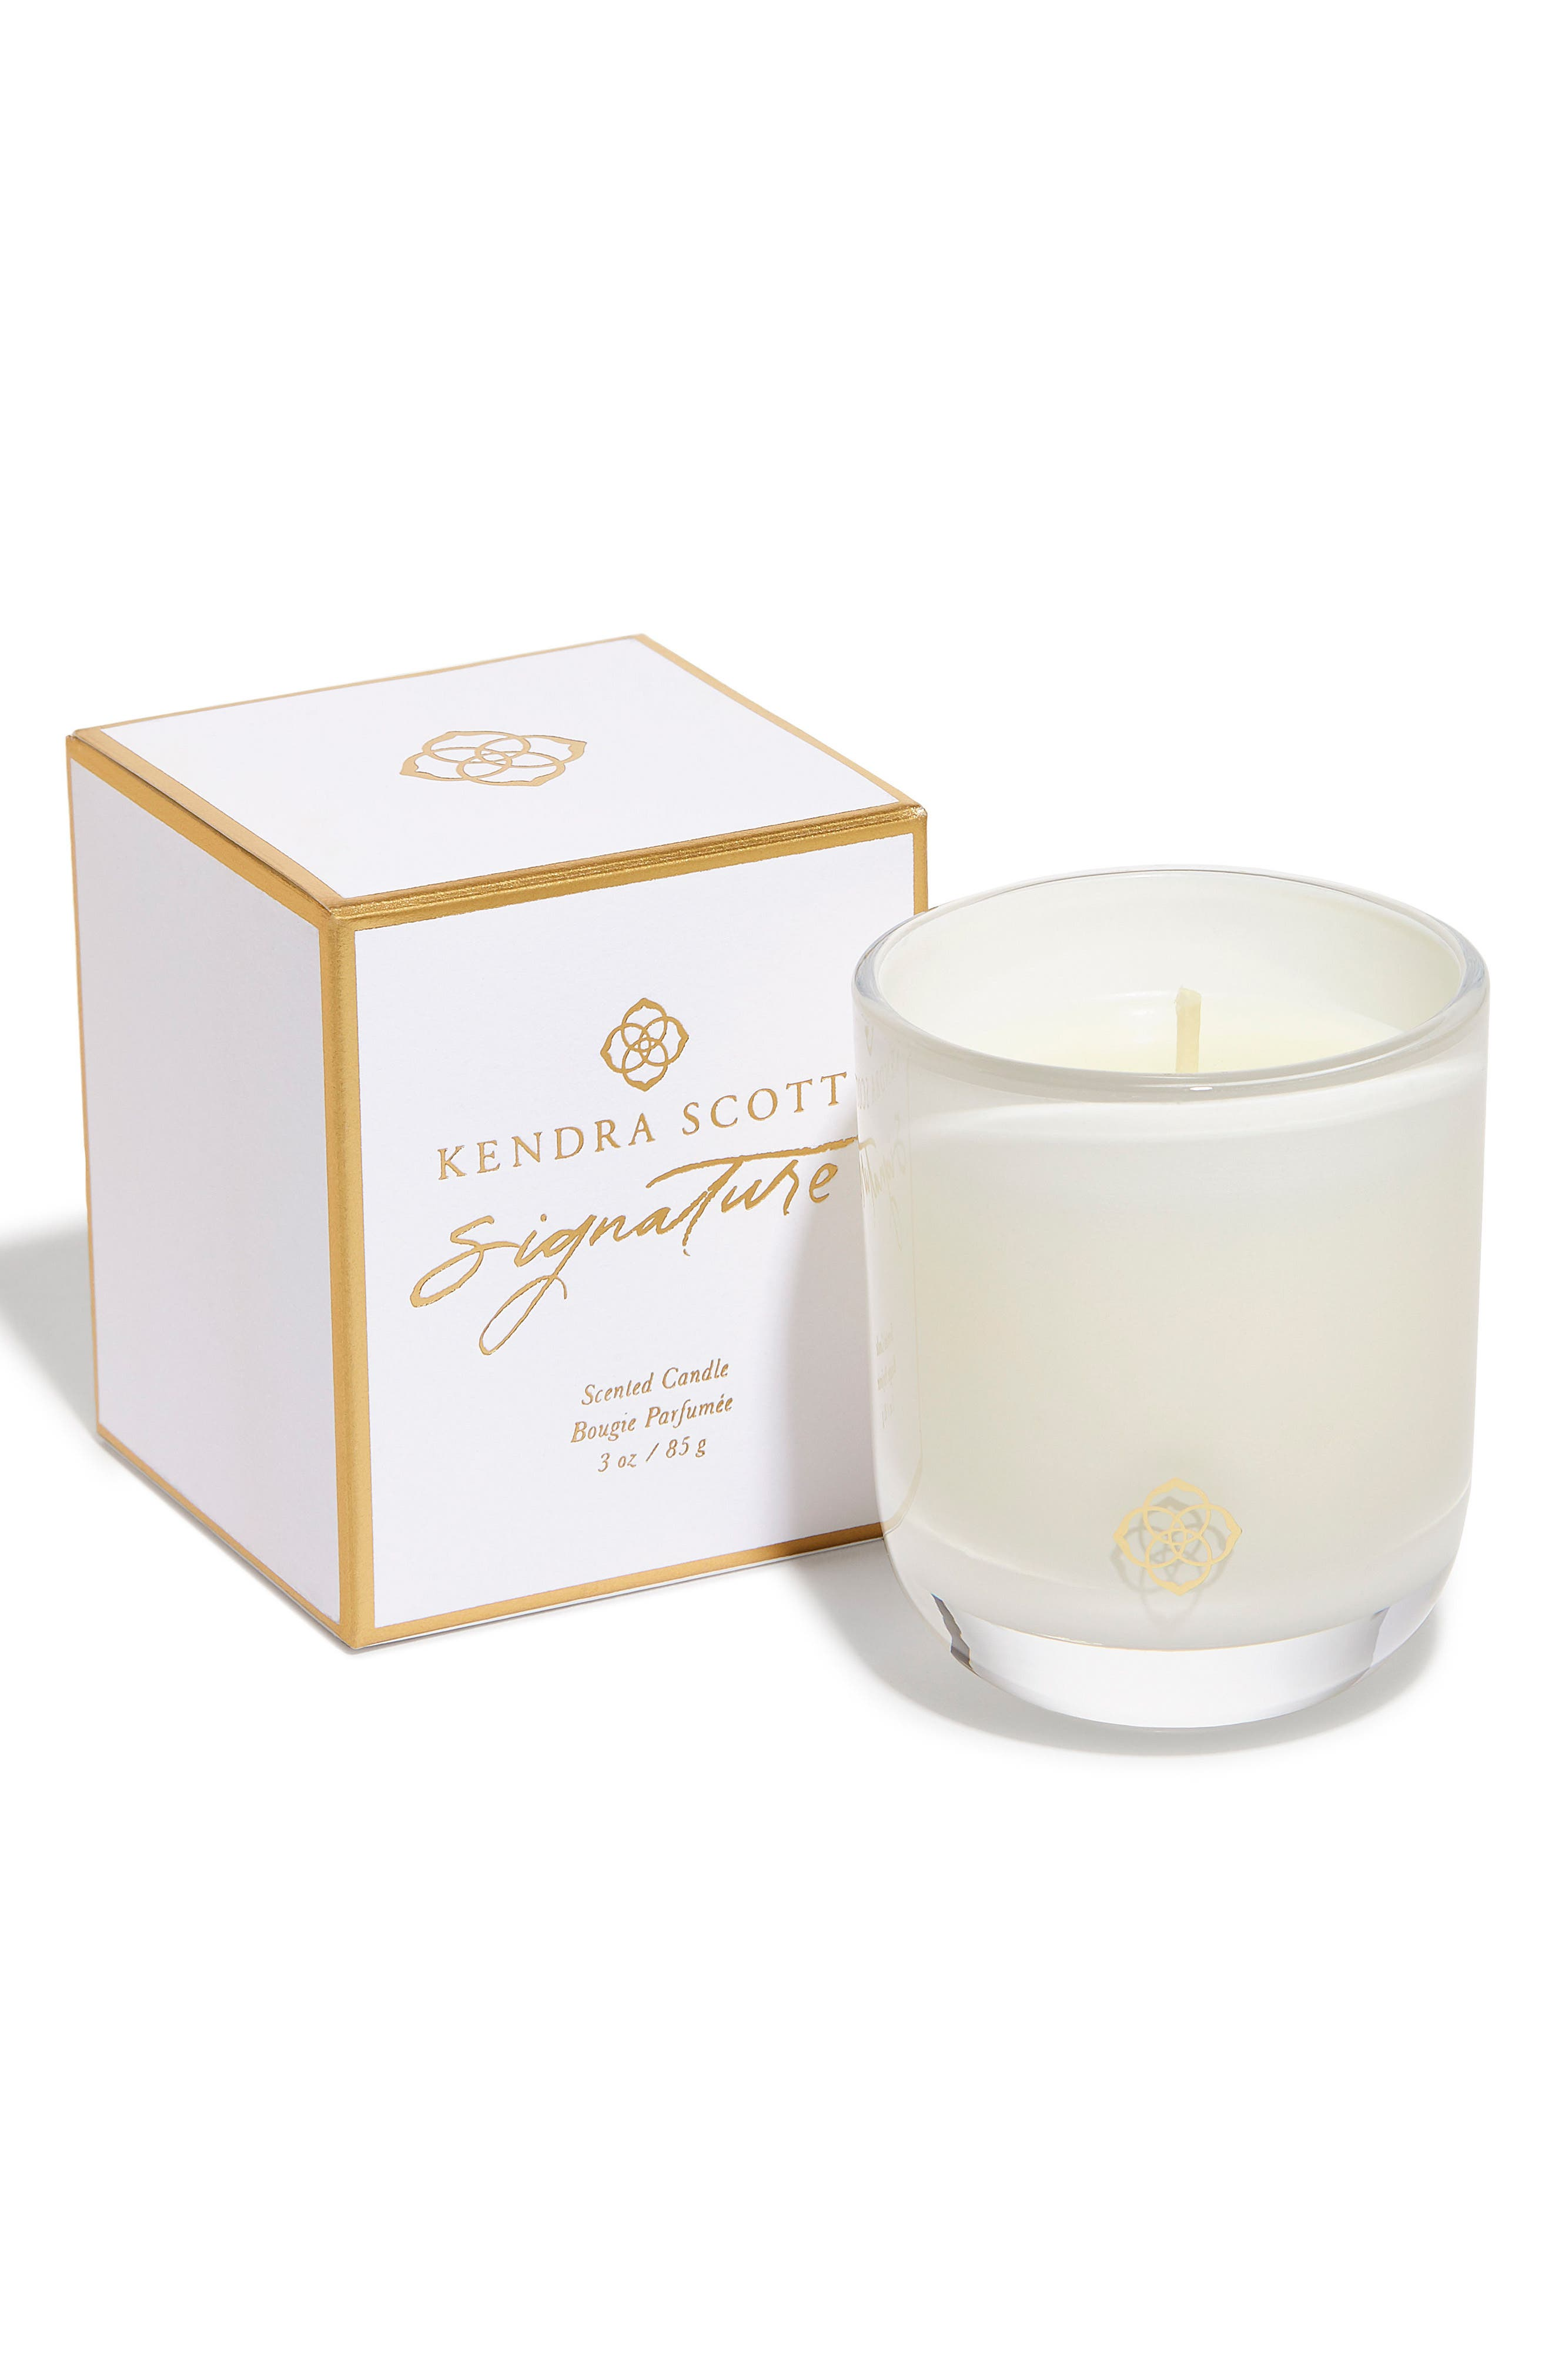 Kendra Scott Scented Votive Candle